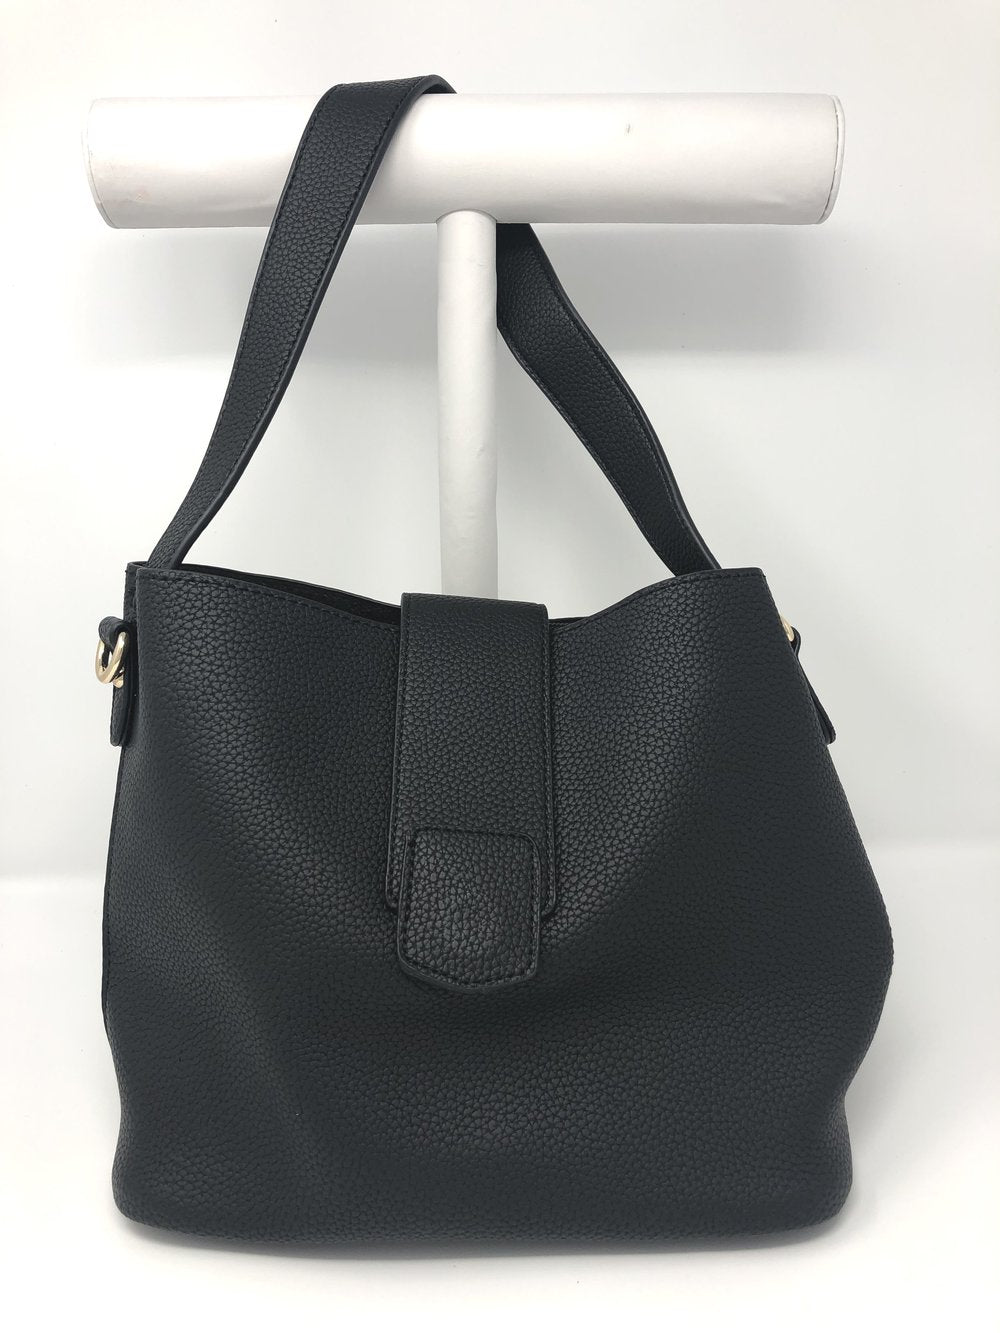 Medium Bucket Bag with Flap Closure in Black